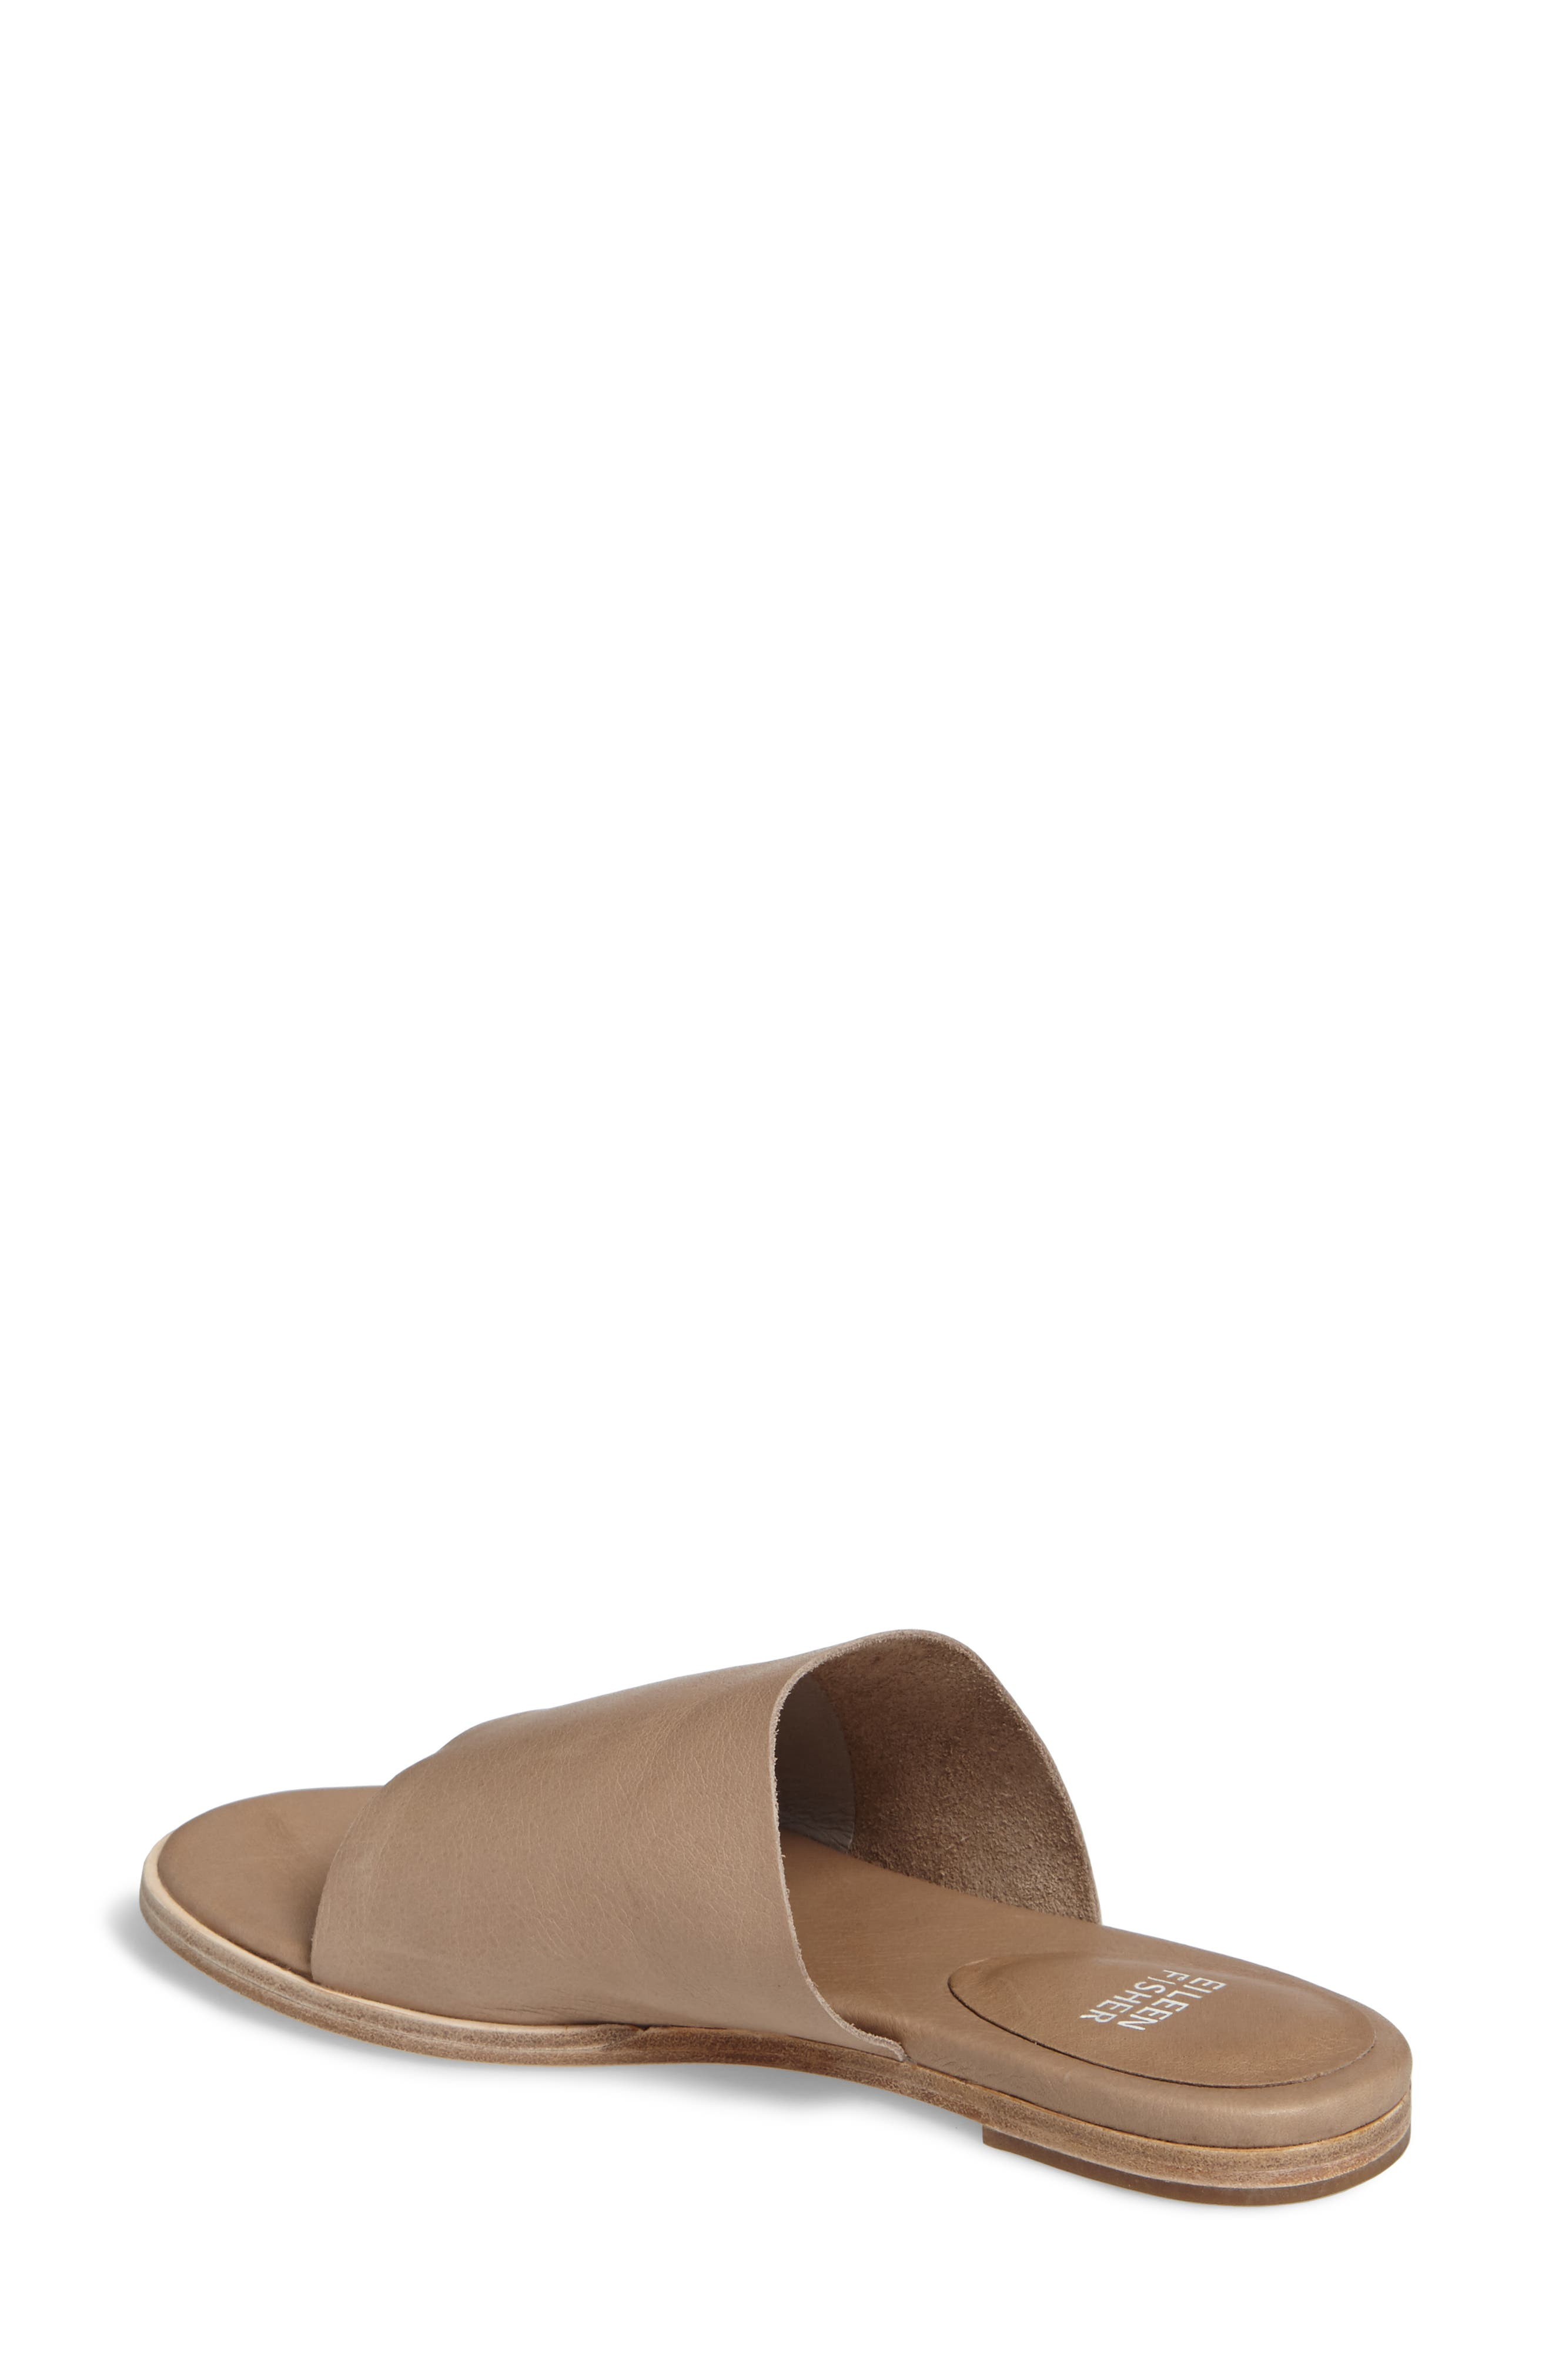 Alternate Image 2  - Eileen Fisher 'Mere' Thong Sandal (Women)